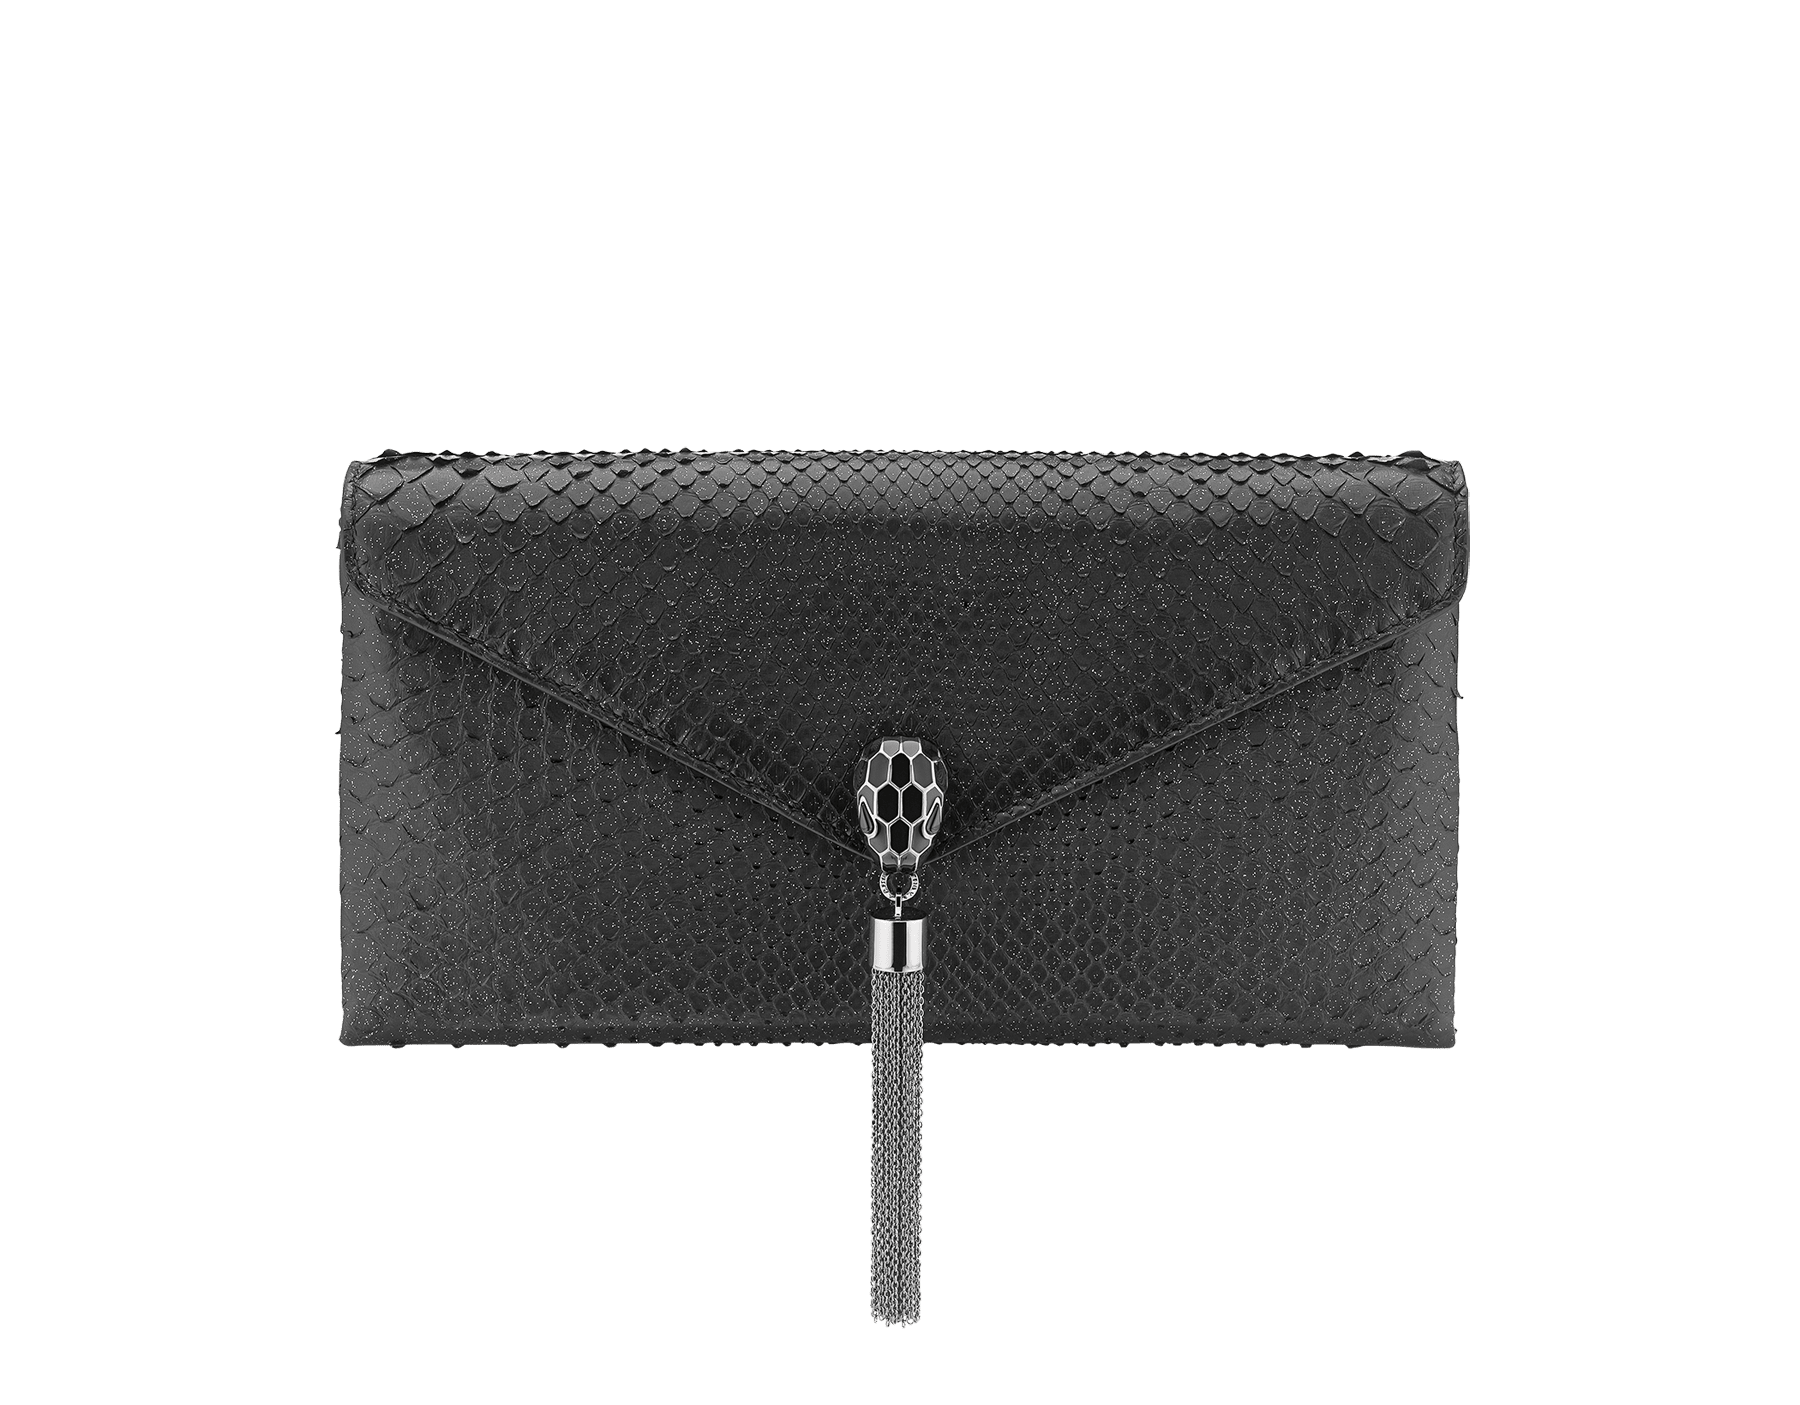 """""""Serpenti"""" evening clutch bag in black Diamond Glam python skin. Iconic snake head stud closure with tassel in dark ruthenium plated brass enriched with black shiny enamel and black onyx eyes. 289041 image 1"""